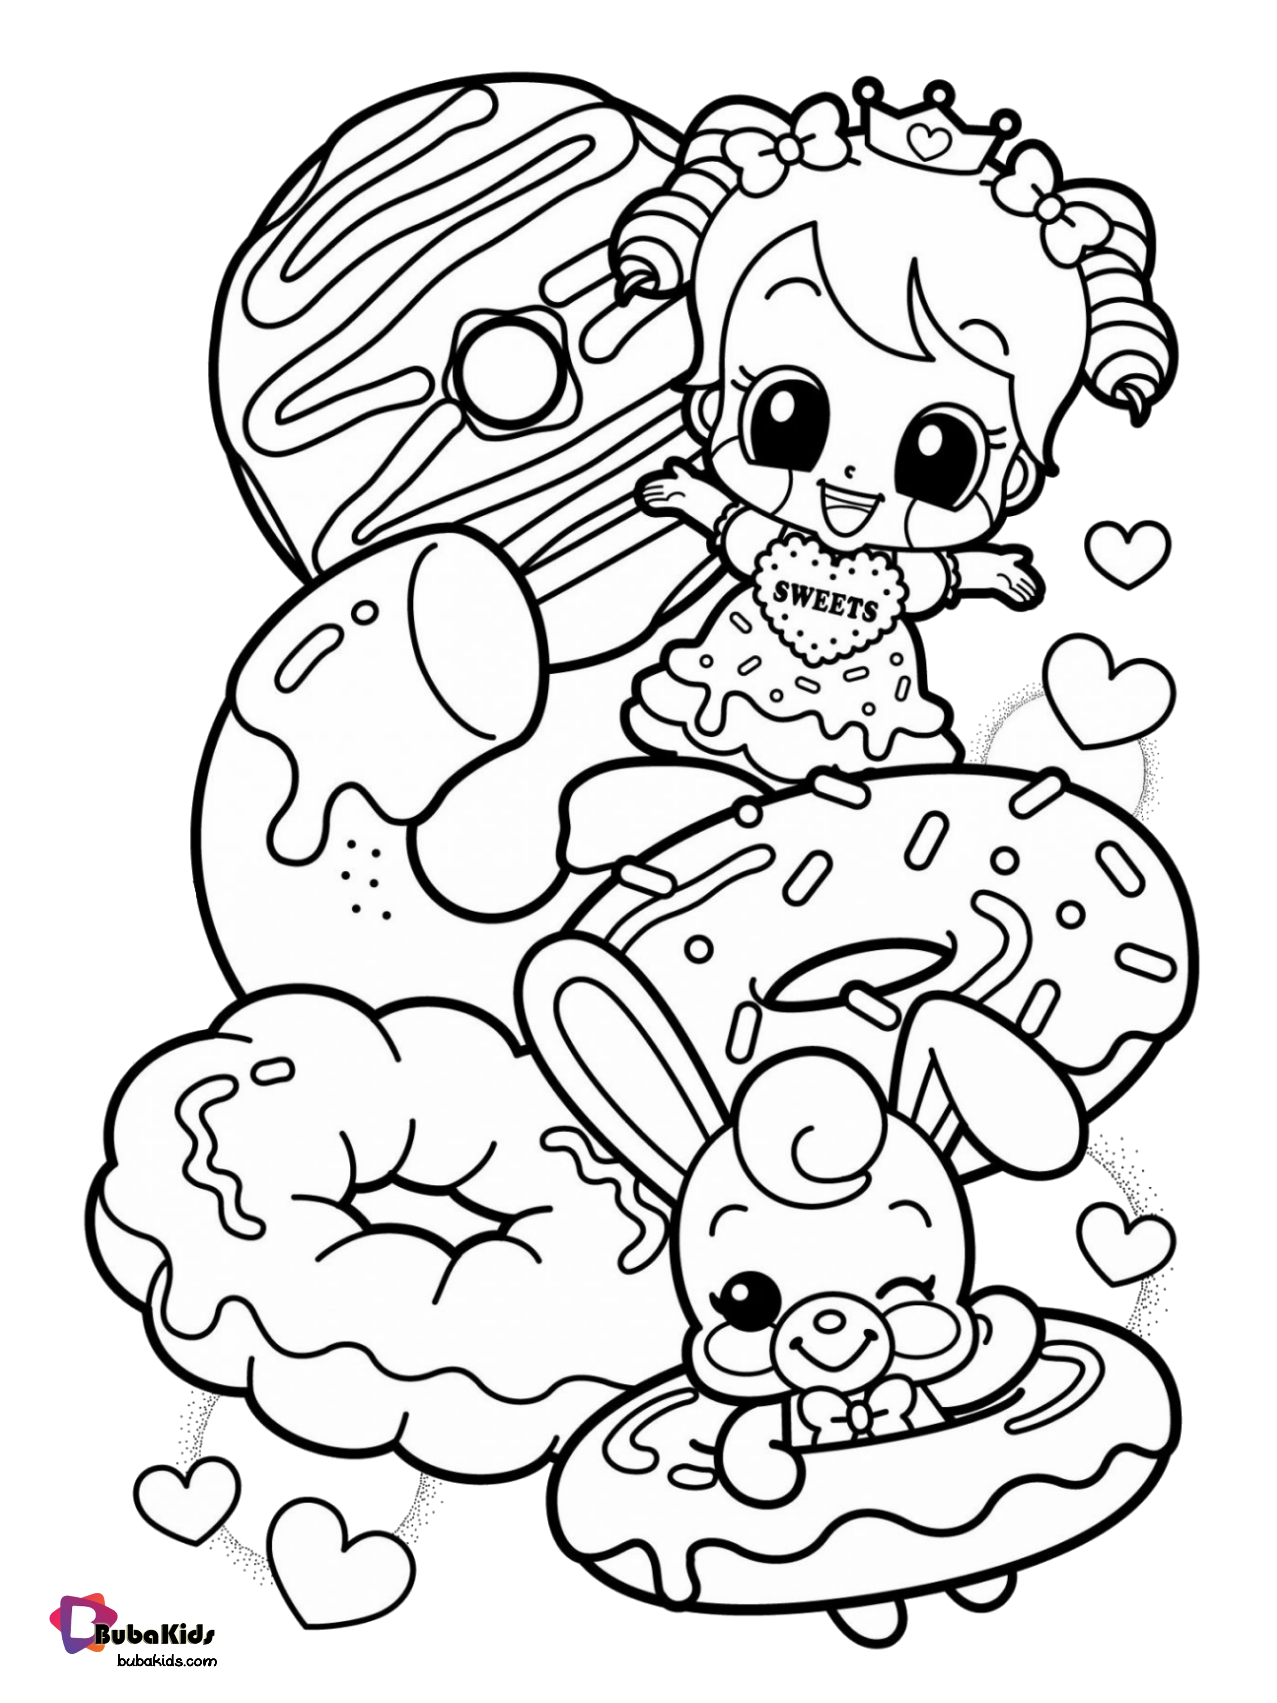 coloring page donut food donuts coloring page collection of cartoon coloring donut page coloring